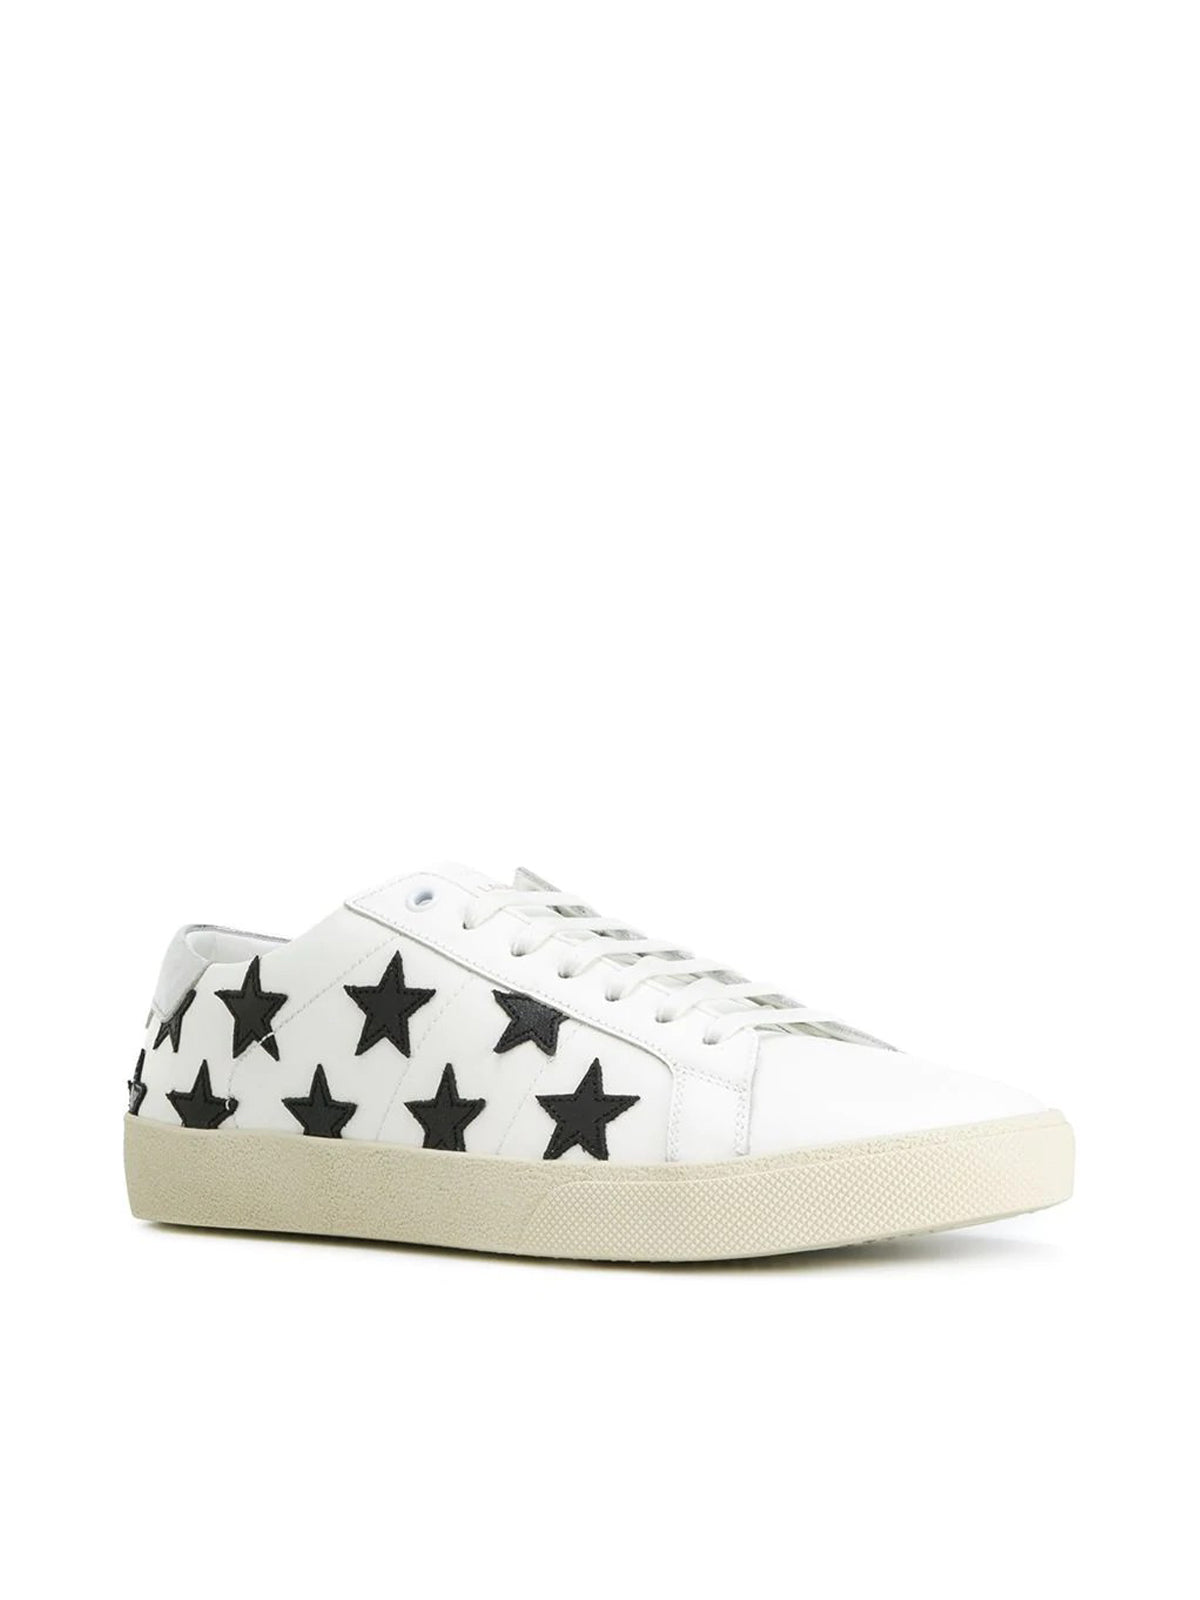 LOW SNEAKERS WITH STARS